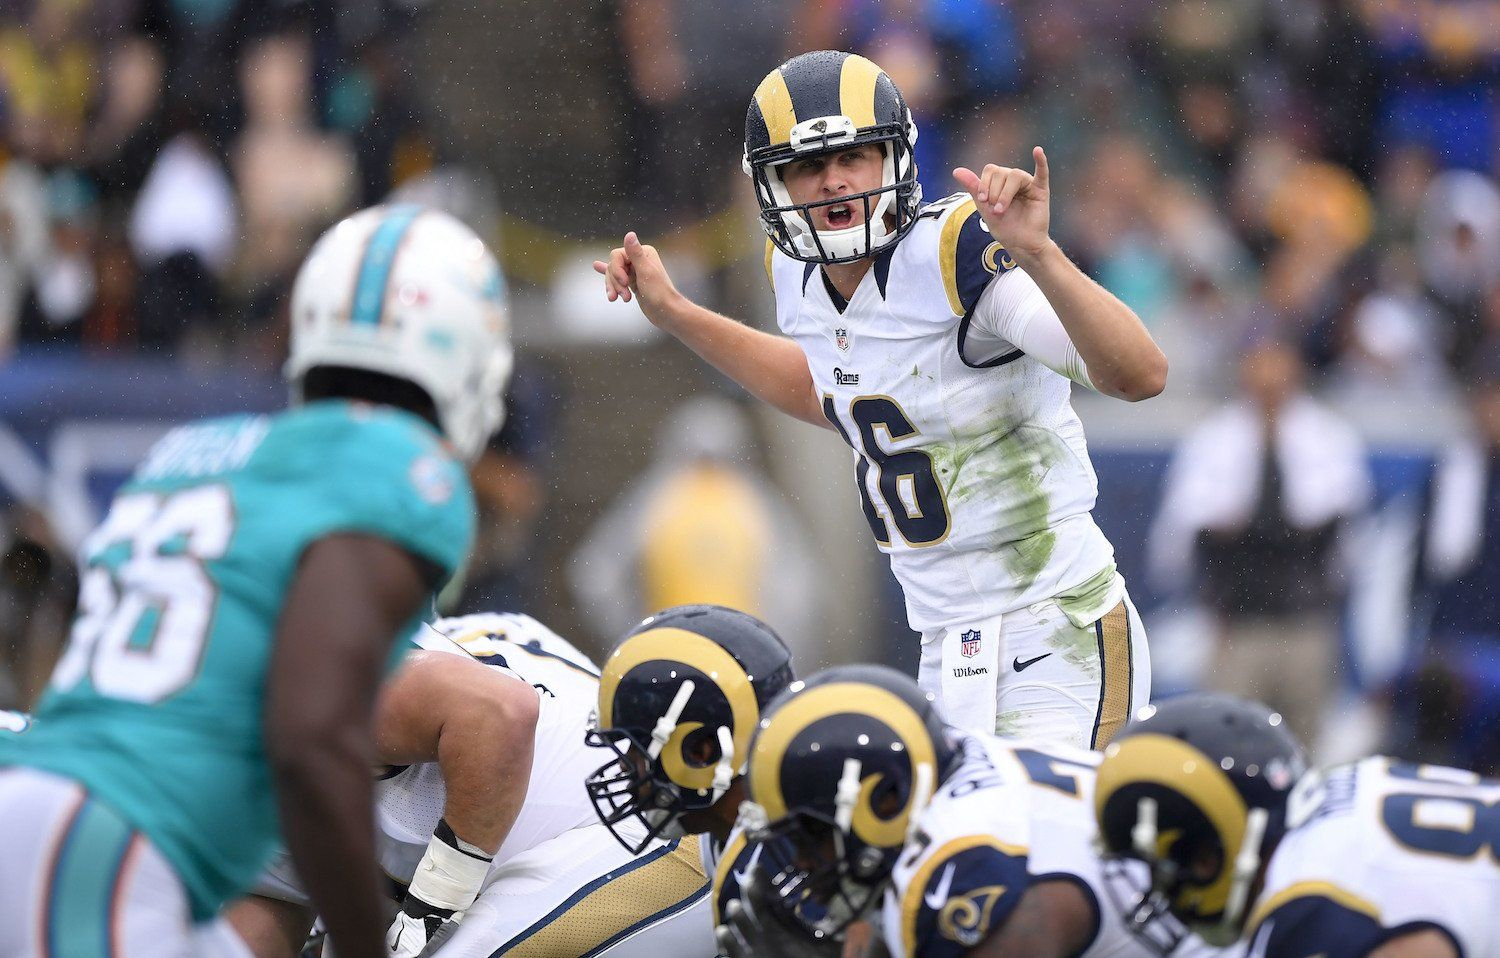 Jared Goff S Rams Debut Featured A Nice Scramble And Little Else Business Insider Los Angeles Rams Jared Goff Rams Football